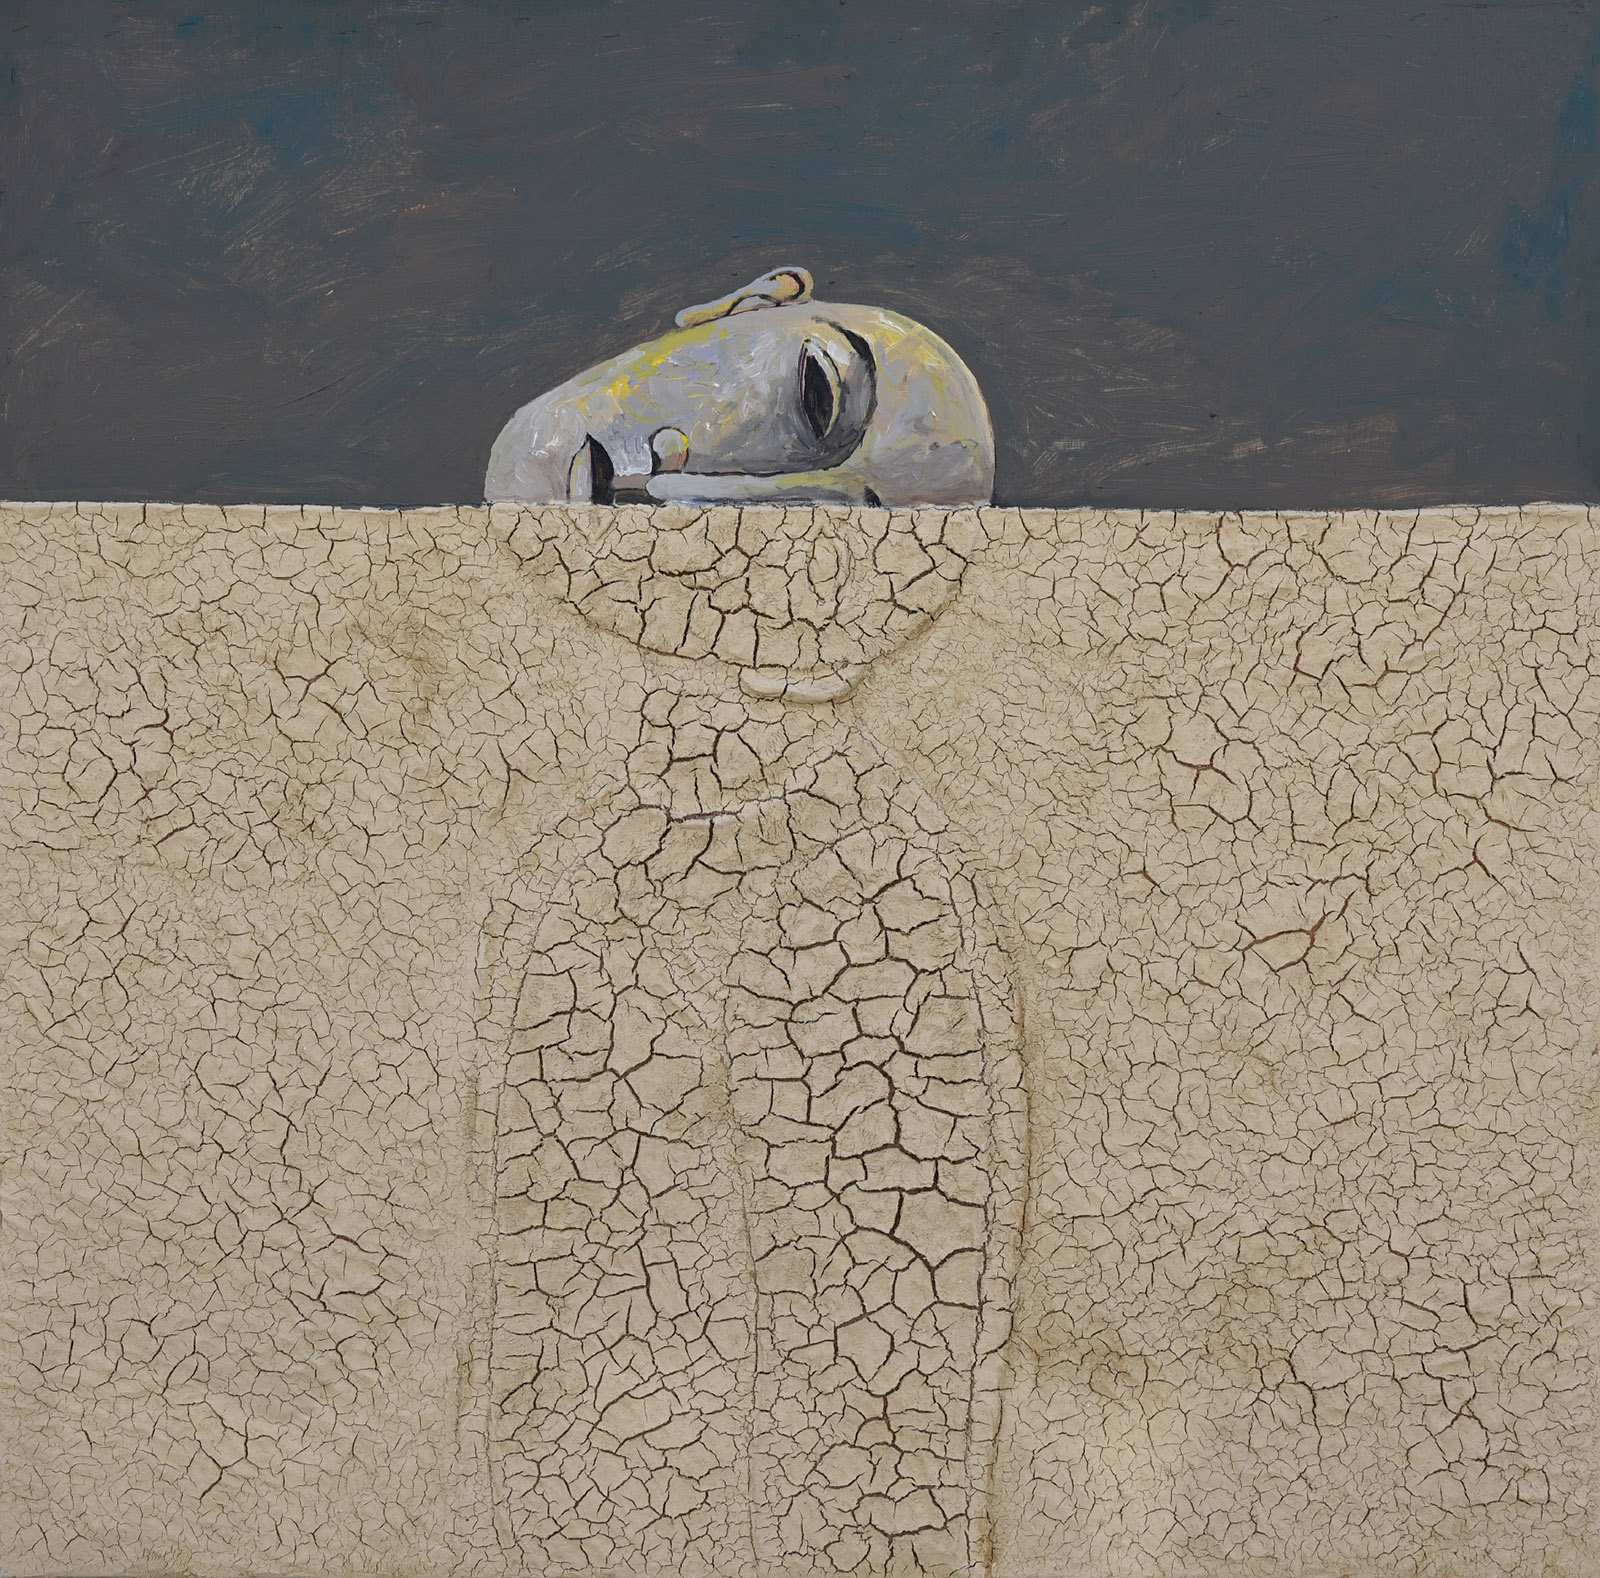 Temporary Escape; painting by Sliman Mansour